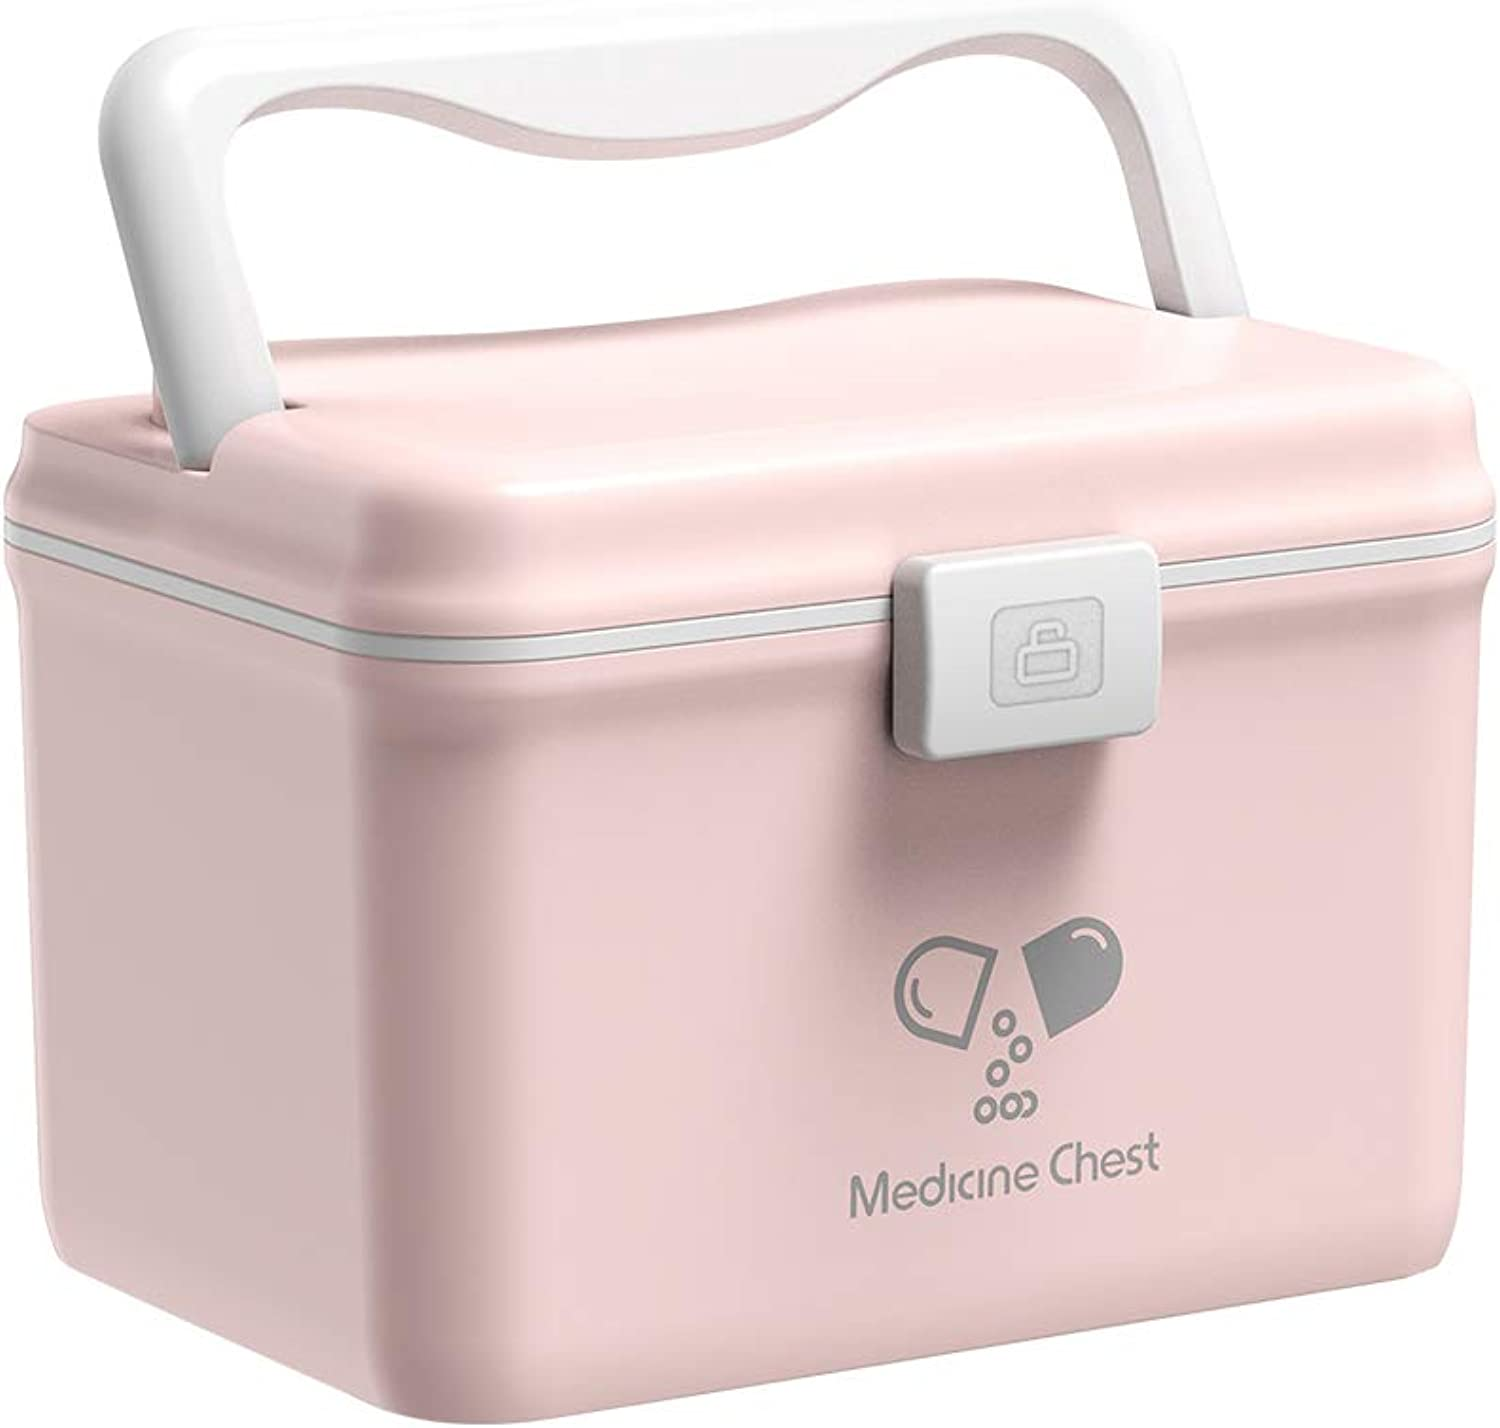 Glosen Medication Box Plastic Storage Box PP Medicine Box with Easy to Open Buckle Snap (Pink)